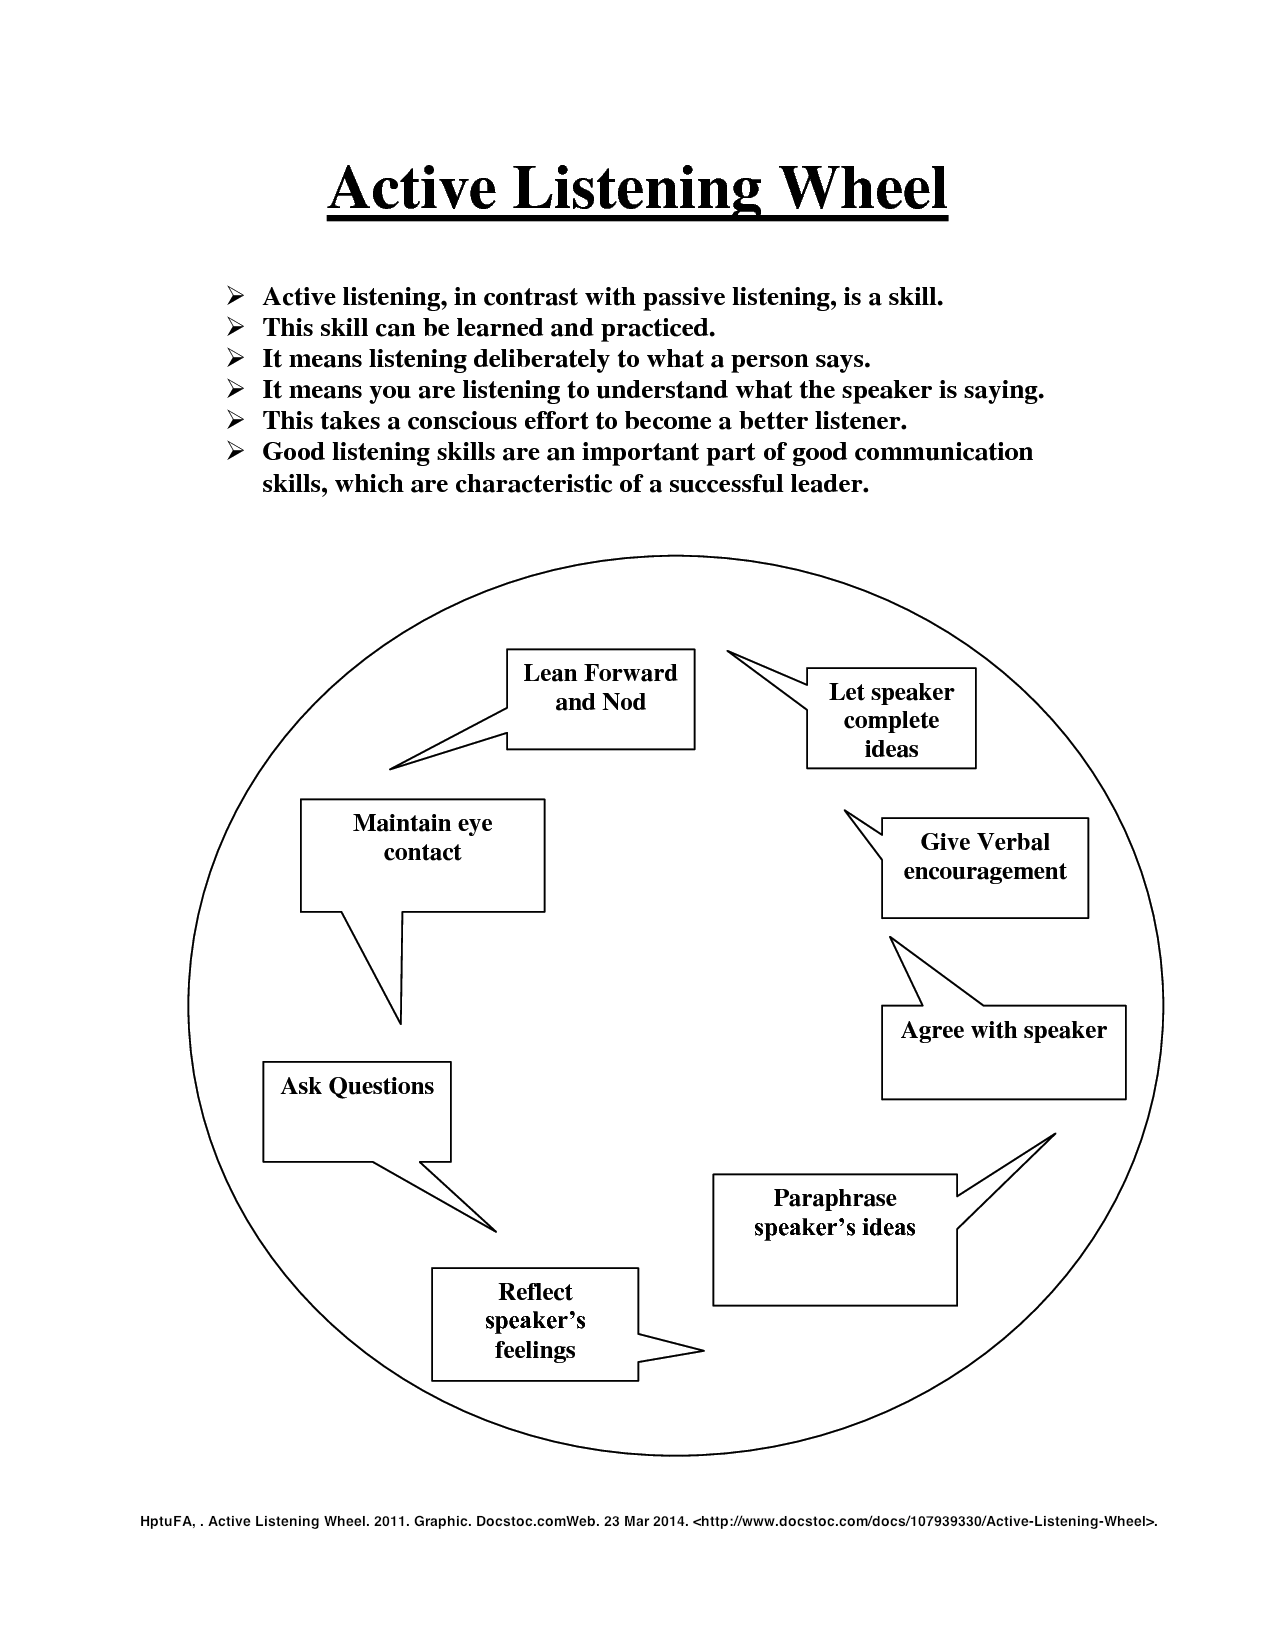 active listening skills reflection paper Psychology - reflection paper: active listening and rapport building.